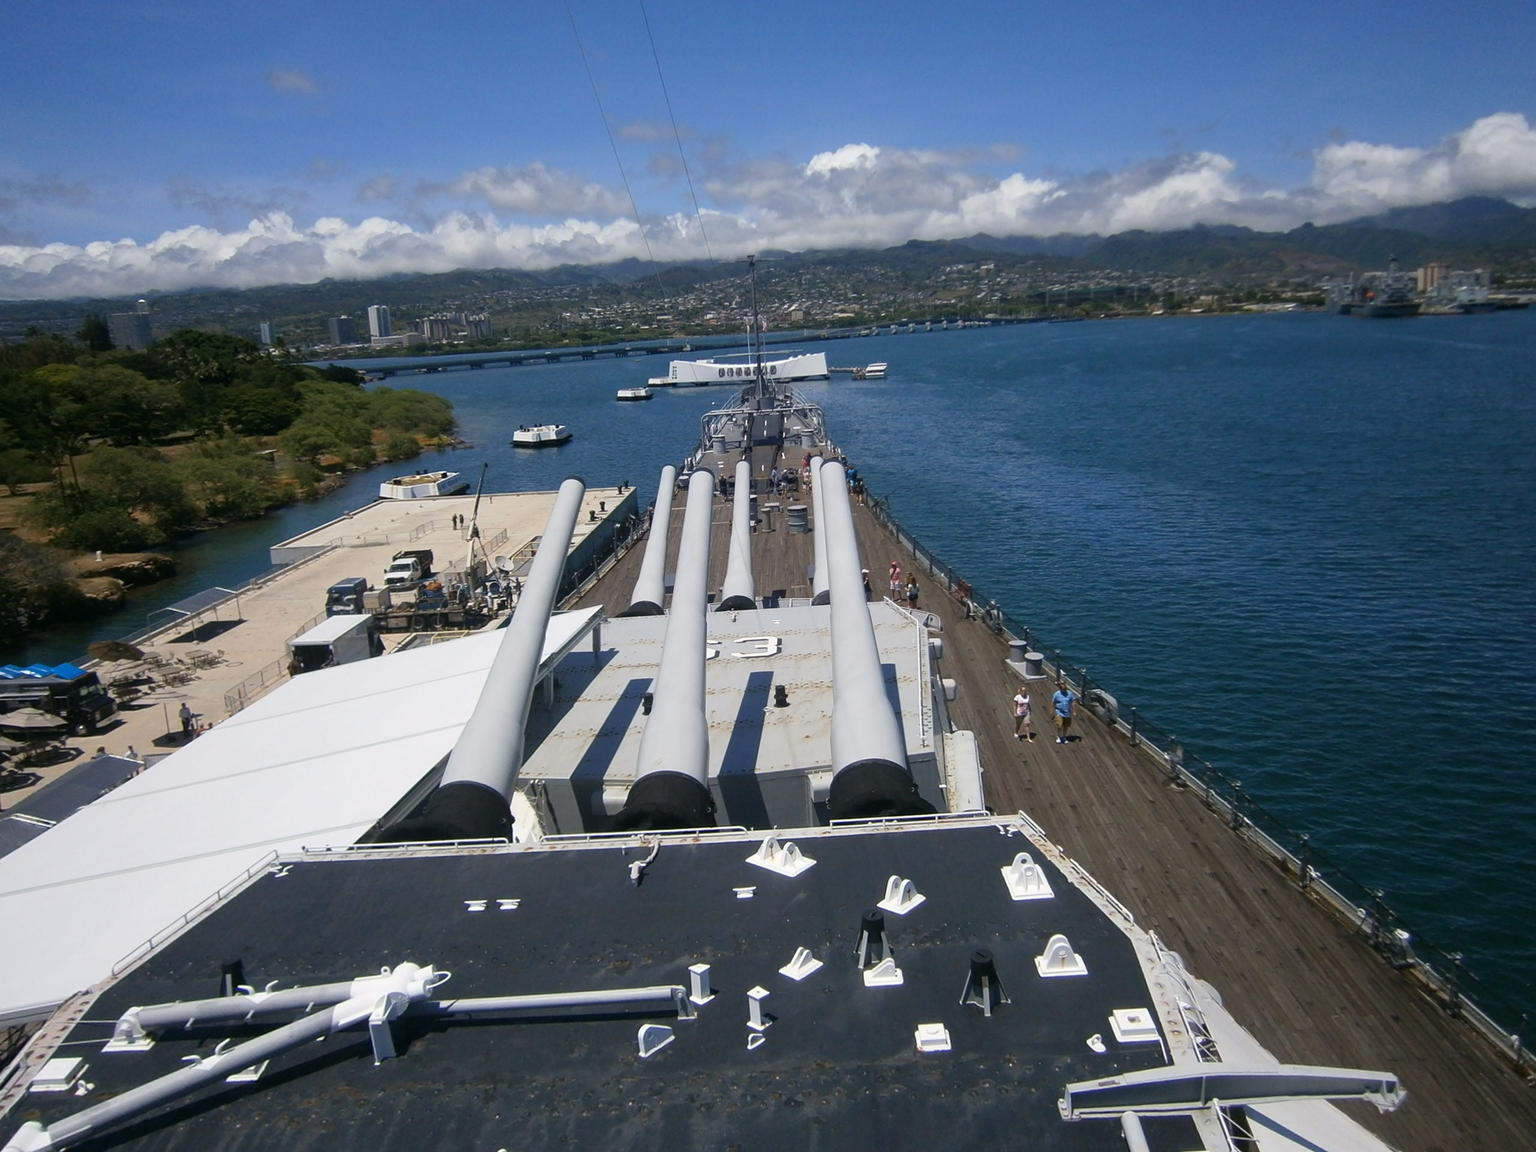 Oahu Day Trip to Pearl Harbor from the Big Island